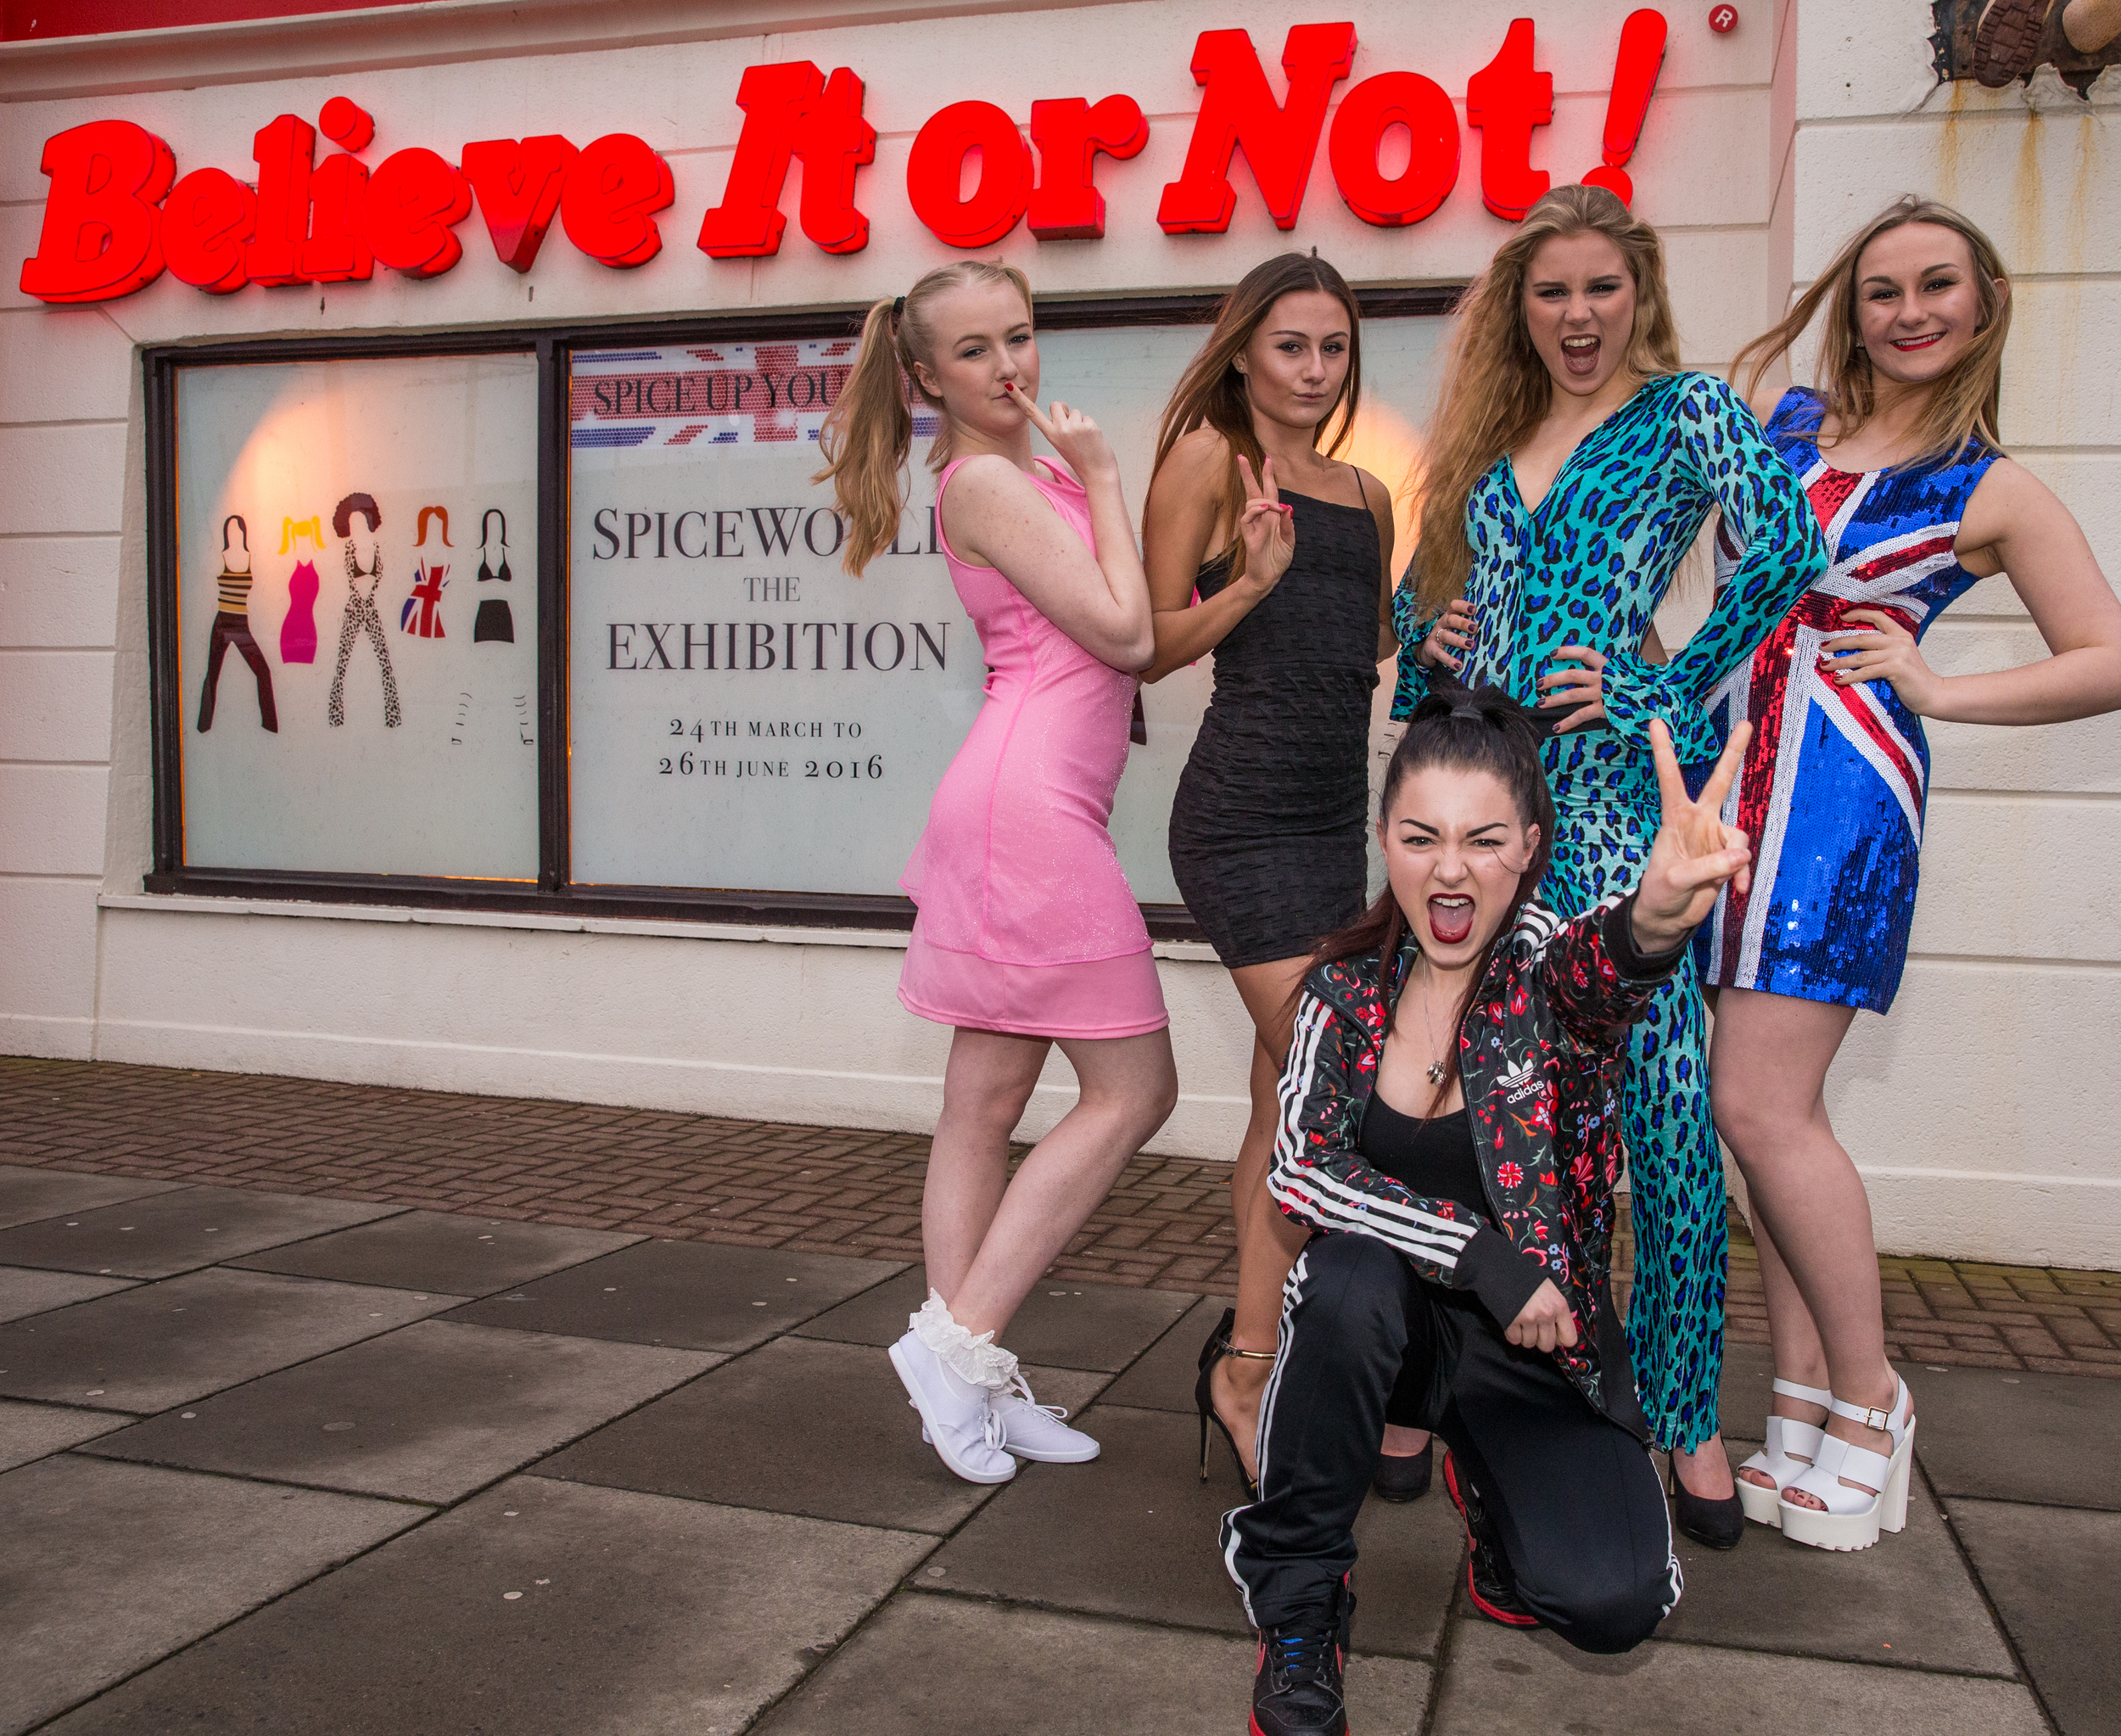 2. Spice Girls Exhibition at Ripley's Blackpool. Photo Credit - Steve Lee, 2016.jpg